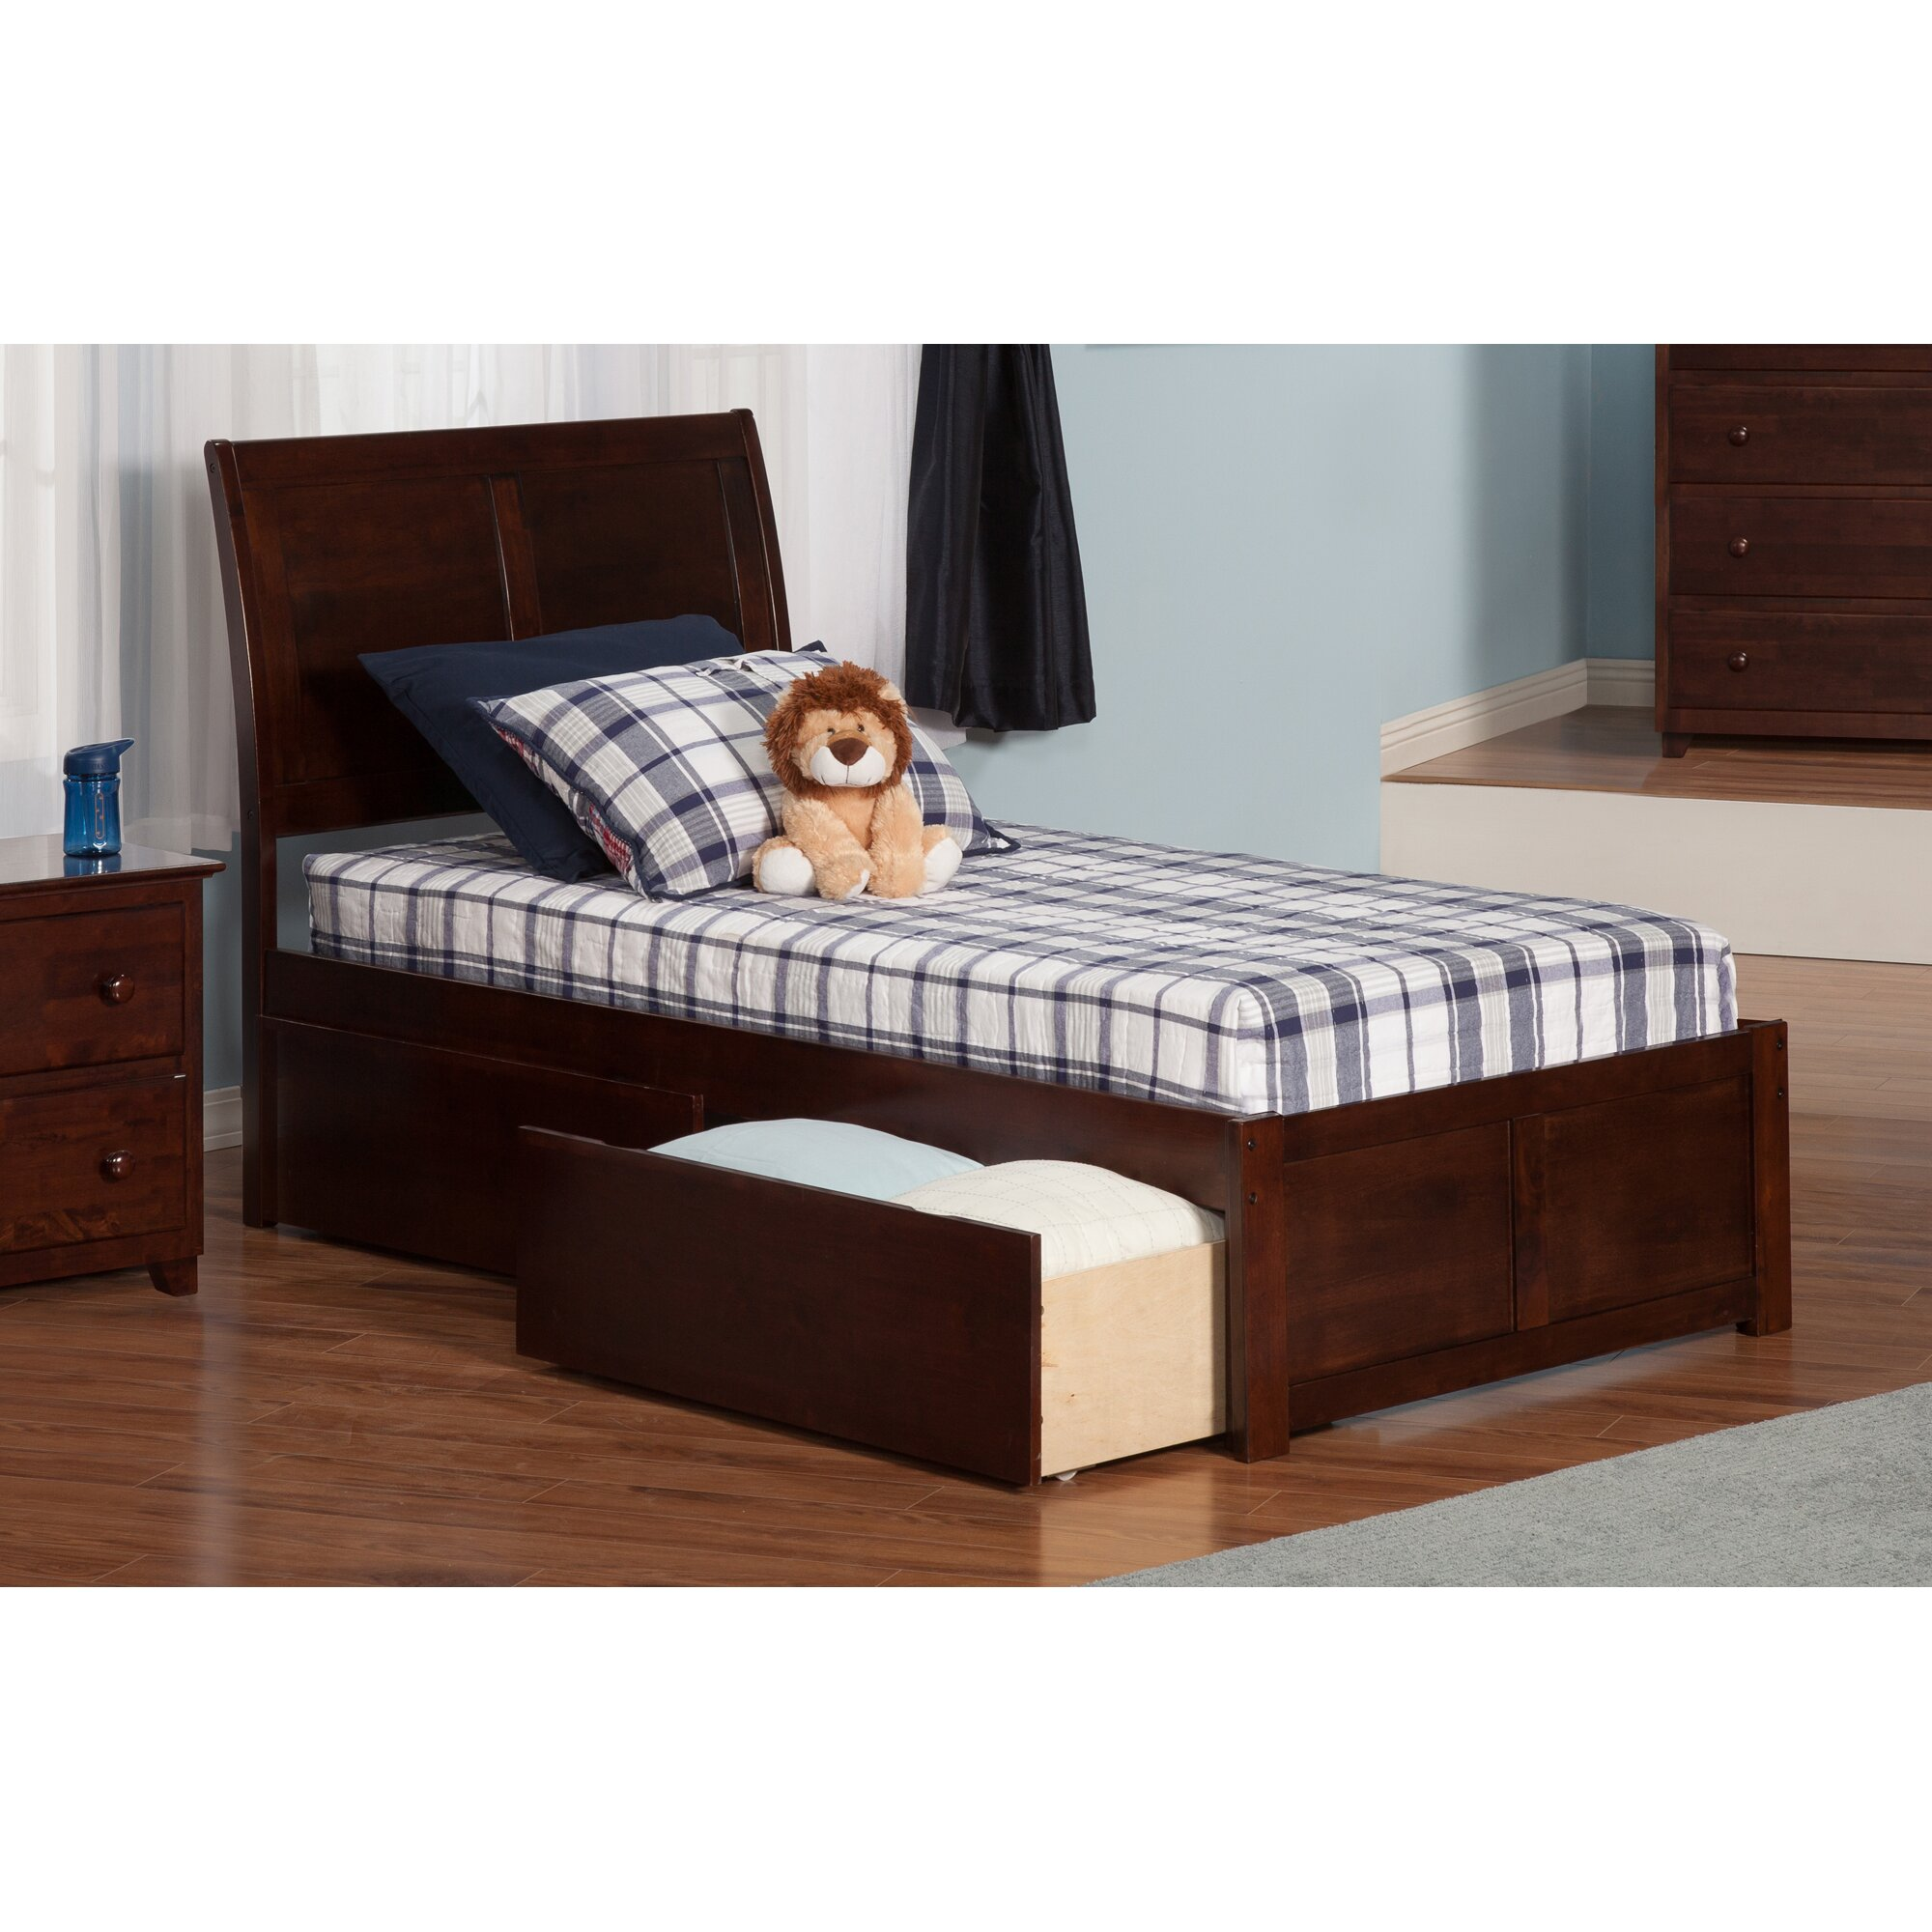 Atlantic Furniture Portland Extra Long Twin Sleigh Bed With Storage Reviews Wayfair